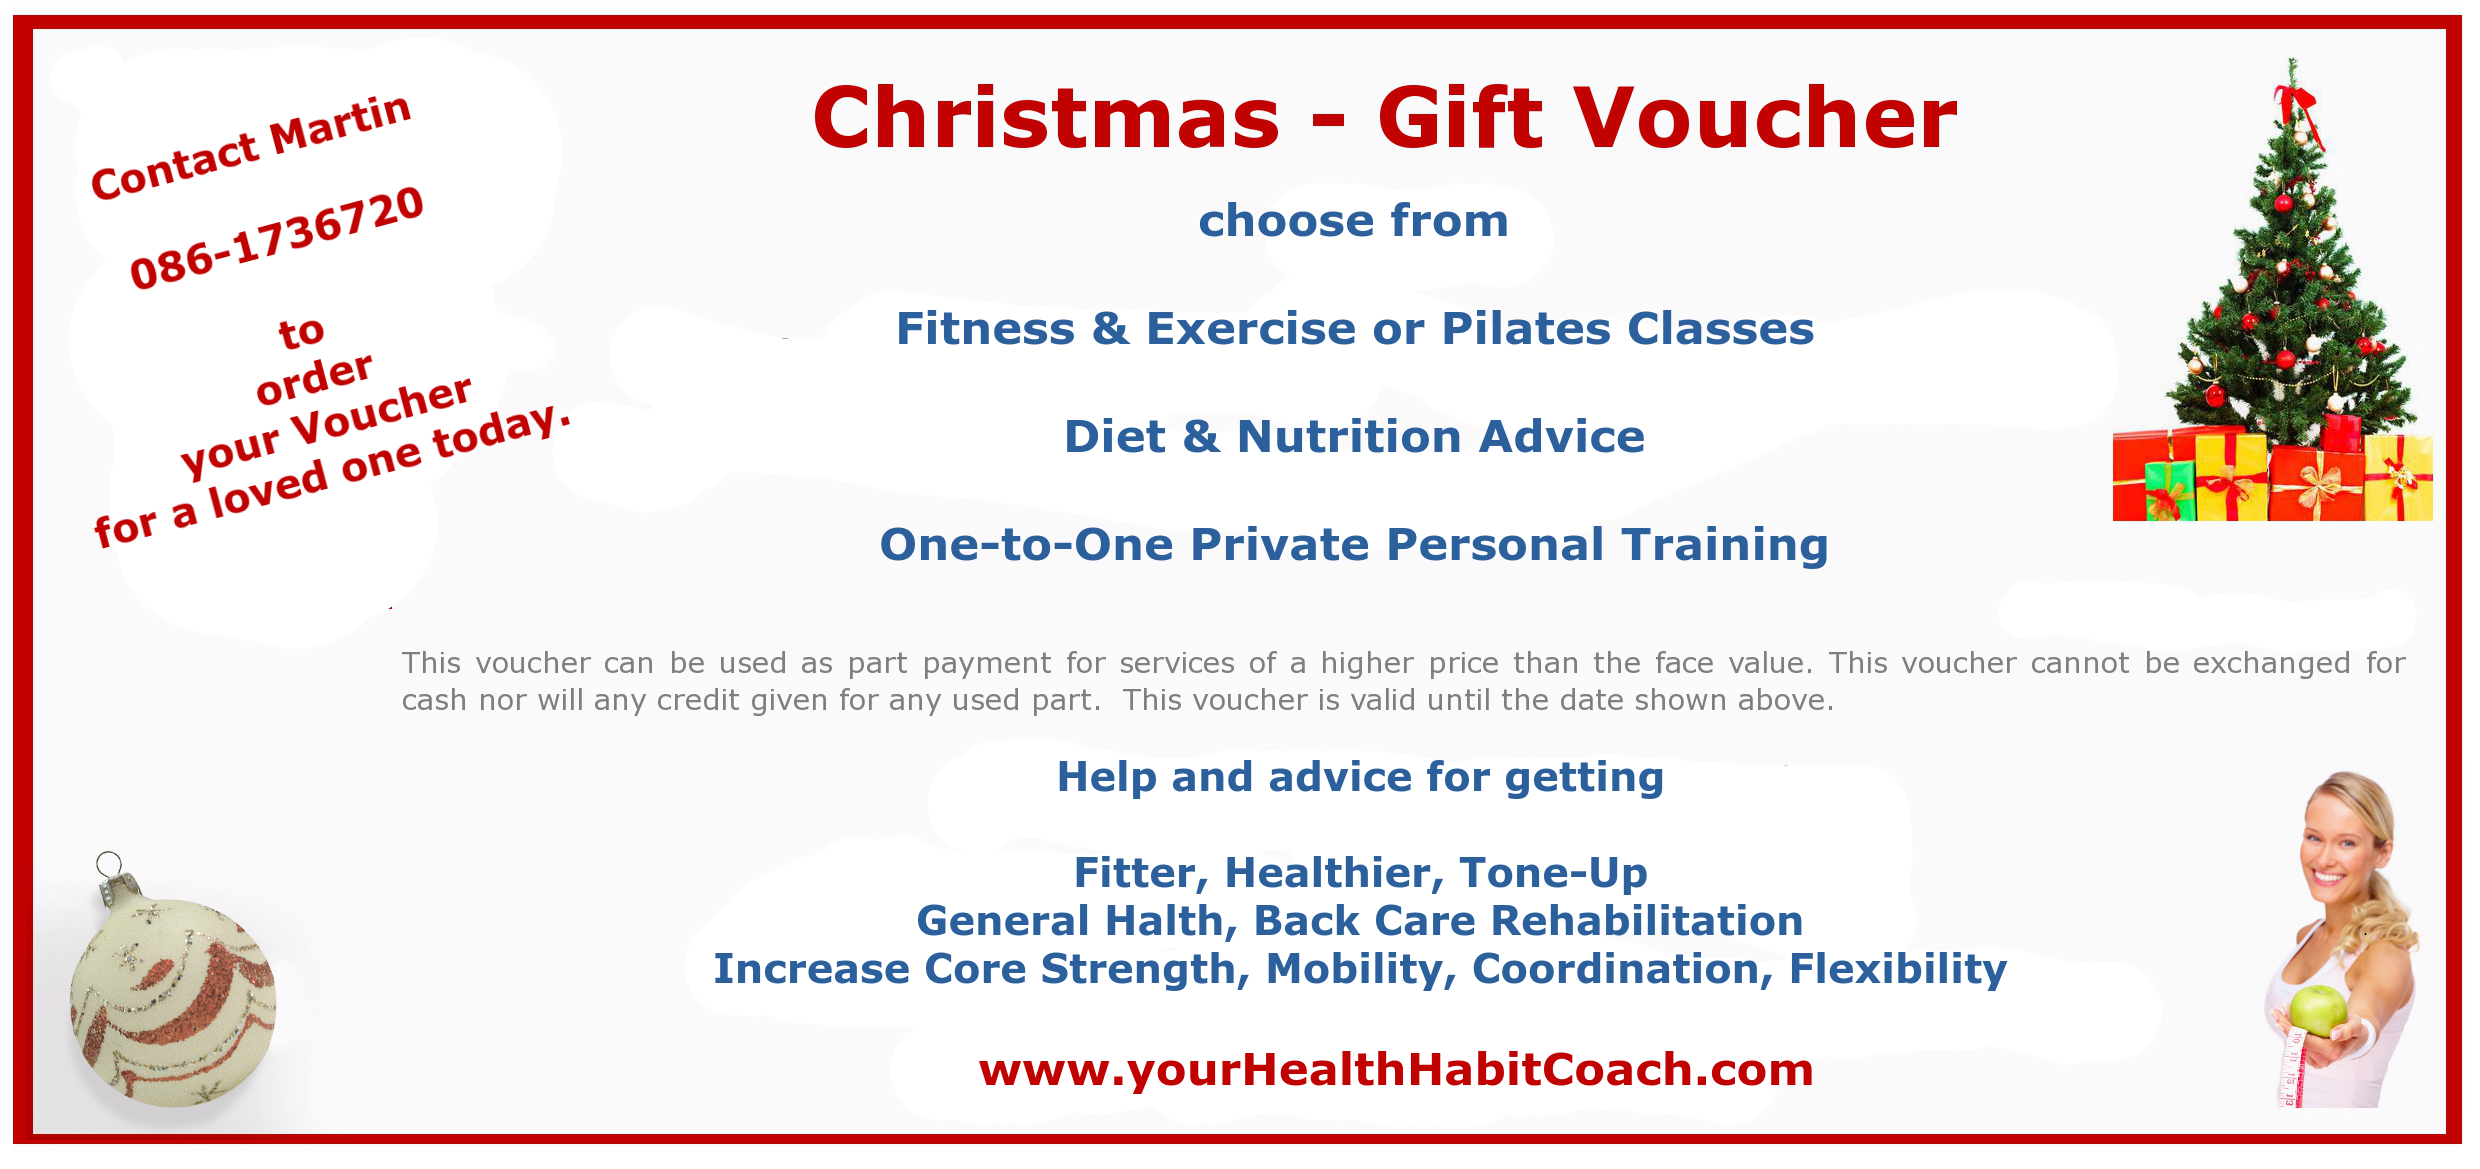 2016 Pilates Diet Nutrition Fitness Exercise Christmas Gift Voucher from Martin Luschin YourHealthHabitCoach in South Dublin Foxrock Sandyford Leoaprdstown Dundrum Rathfarnham Ballinteer Cabtineely Stillorgan Kilternan